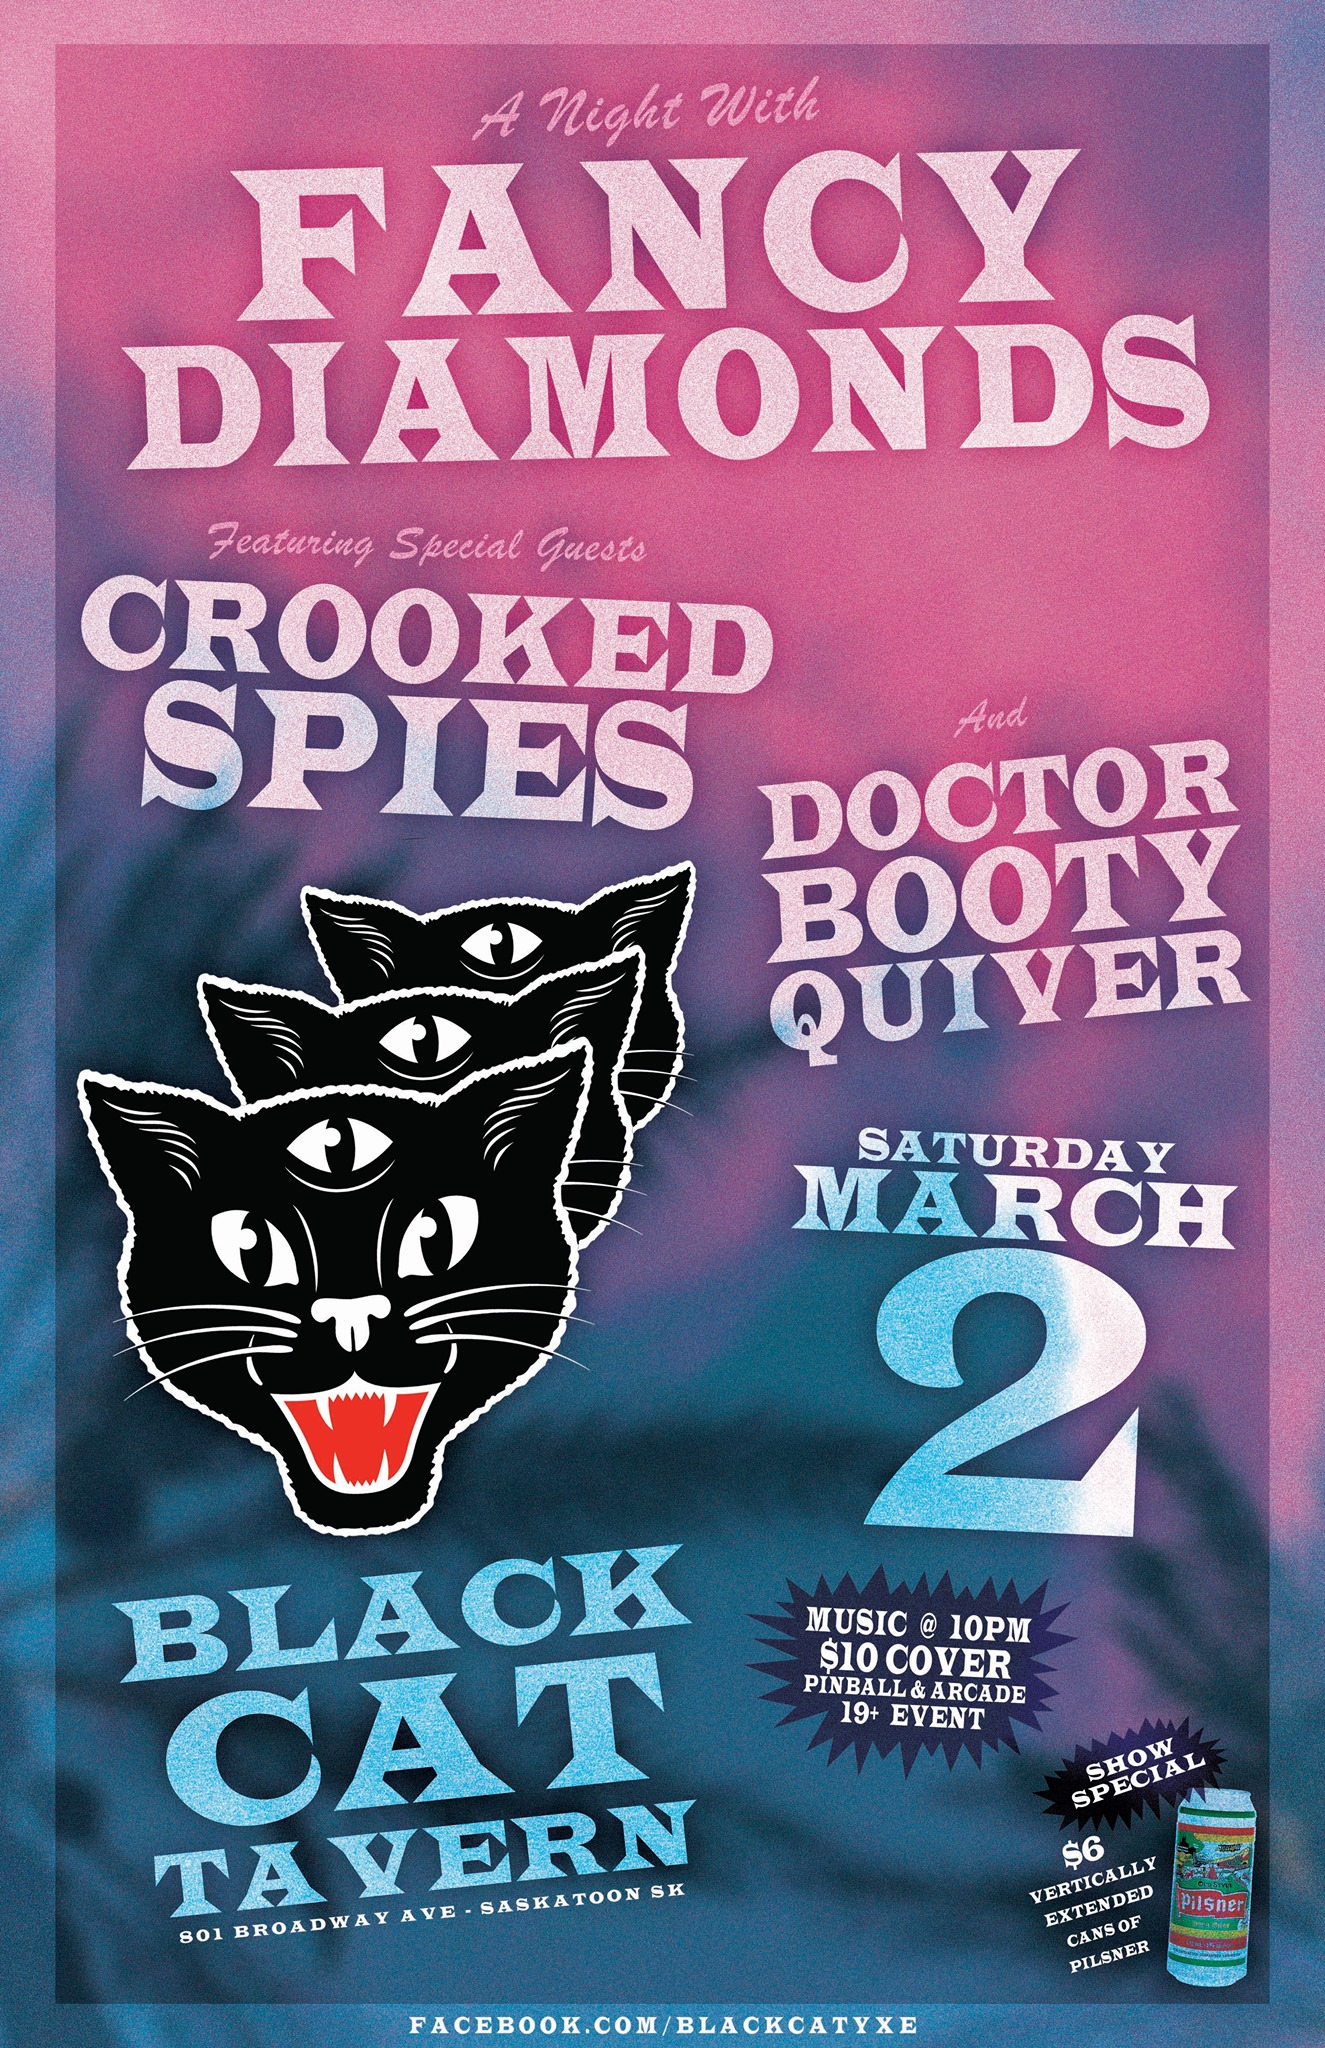 Saturday, March 2nd @ The black Cat Tavern, Saskatoon, SK w/ Fancy Diamonds + Doctor Booty Quiver -